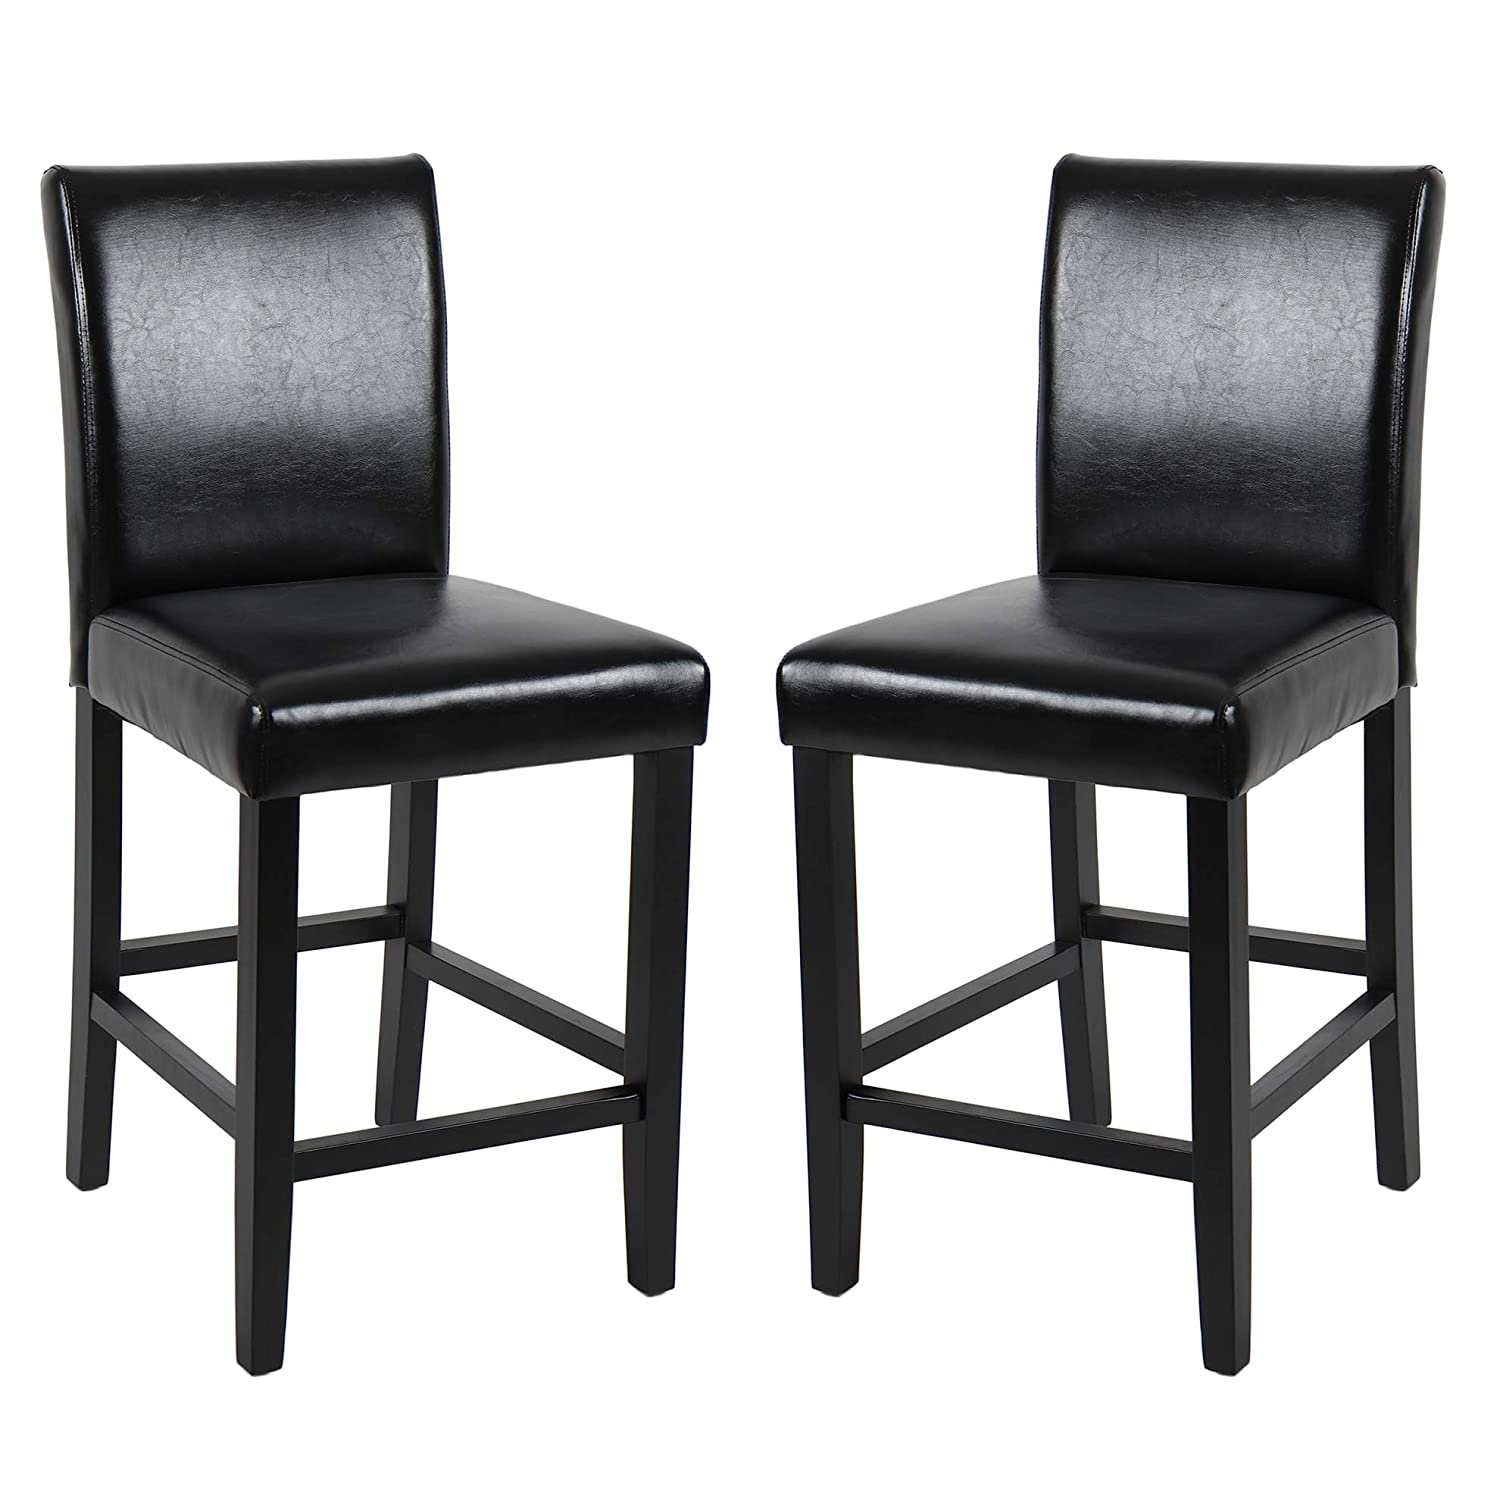 Super Gotminsi Classic 24 Counter Height Stools Upholstered Bar Stools With Solid Wood Legs And Black Leather Set Of 2 Black Cjindustries Chair Design For Home Cjindustriesco